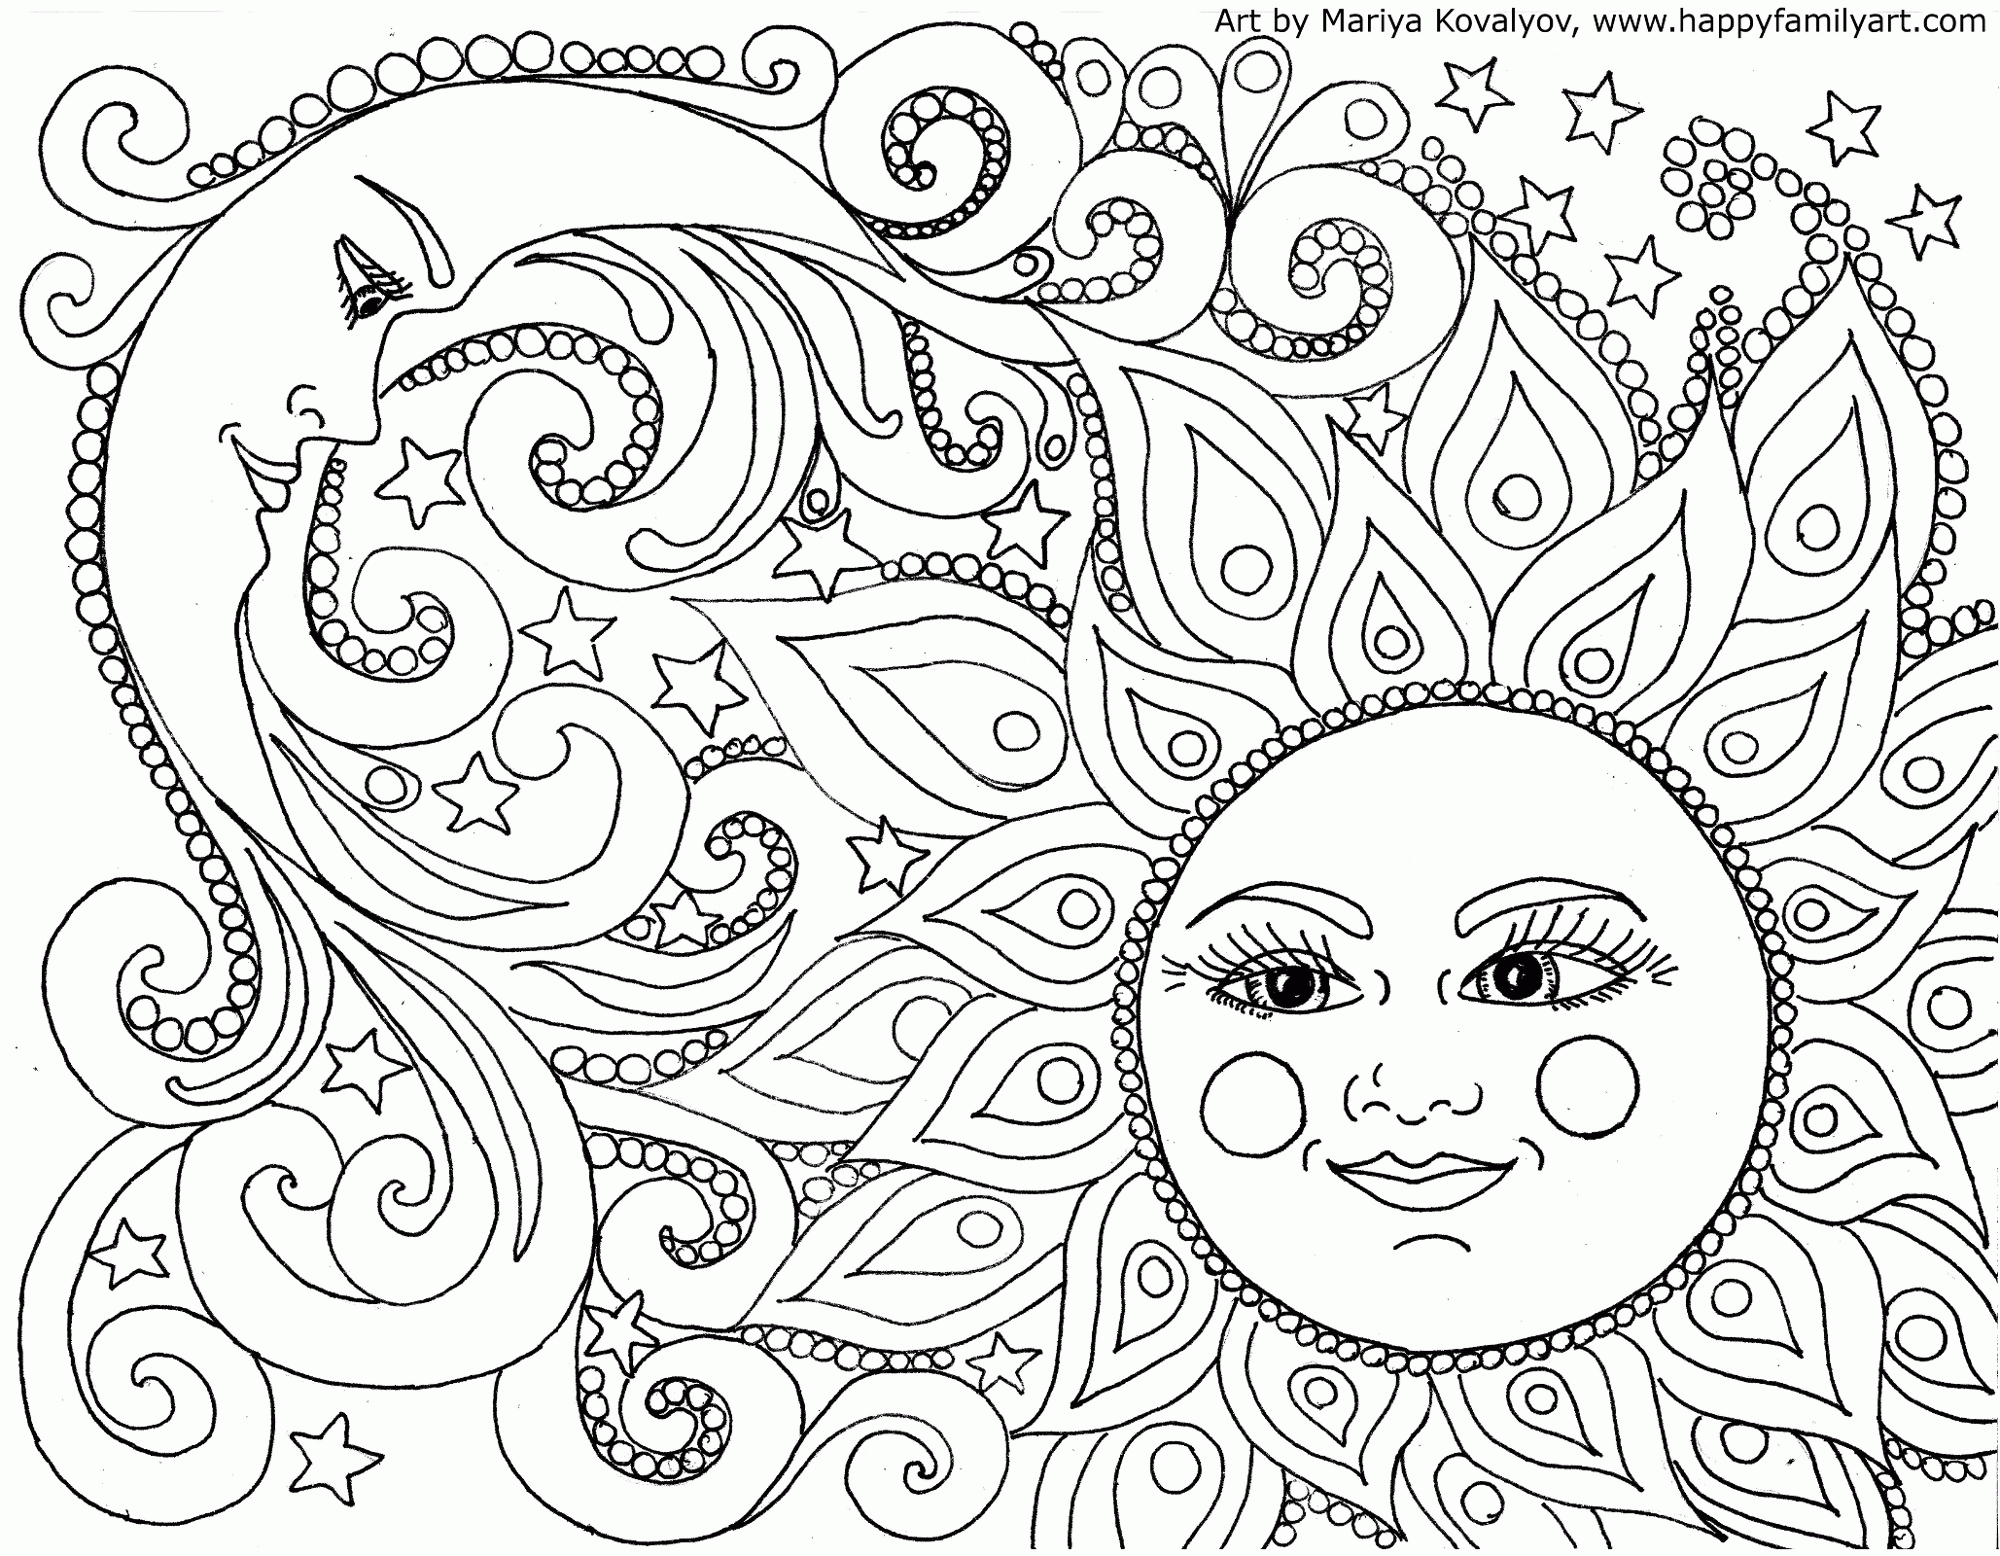 Coloring Pages Coloring Nature Mandalas Fun Time Simple For Coloring Home